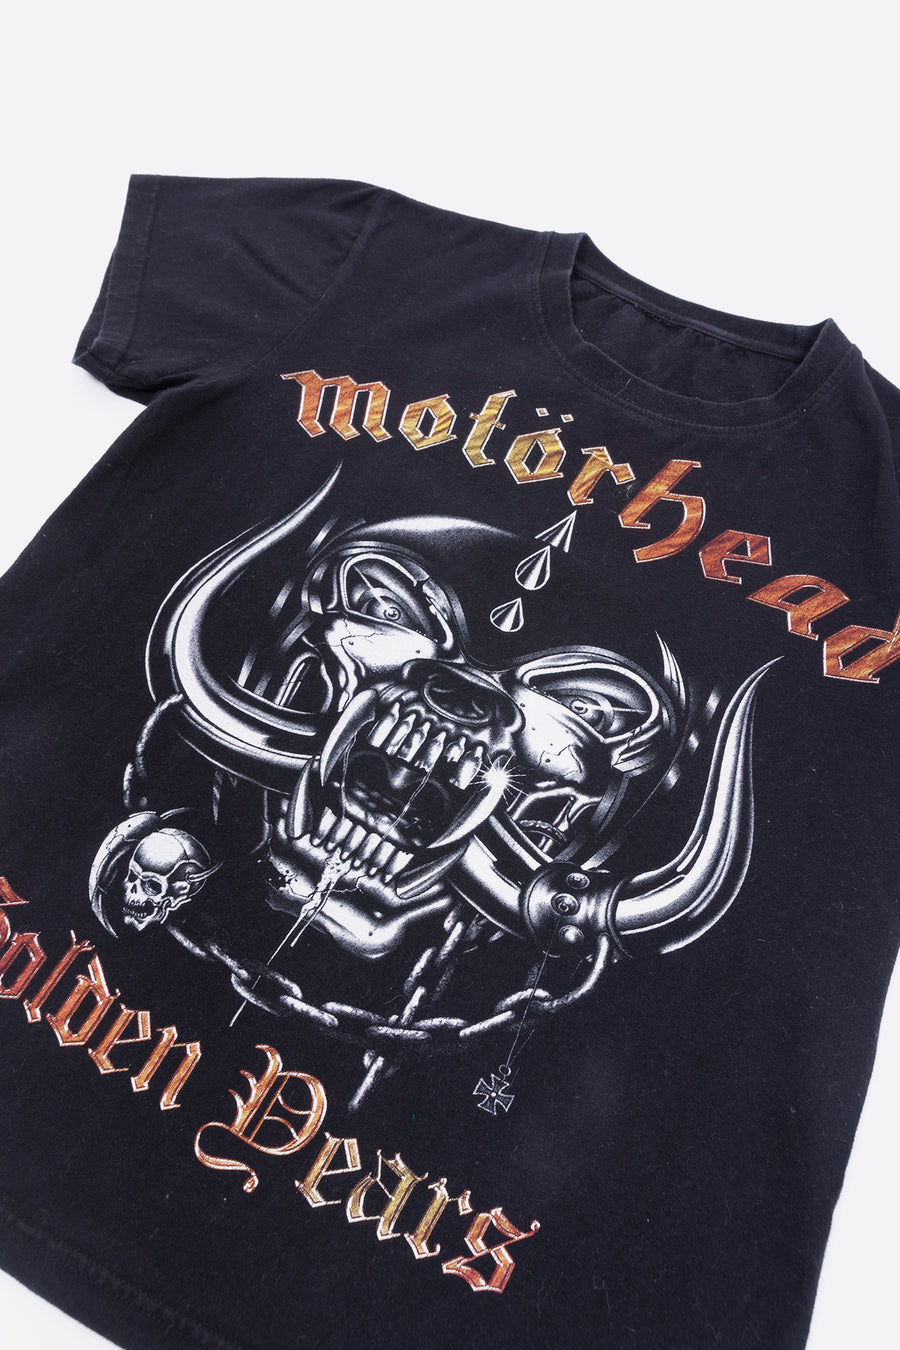 T-shirt Motorhead Golden Tears